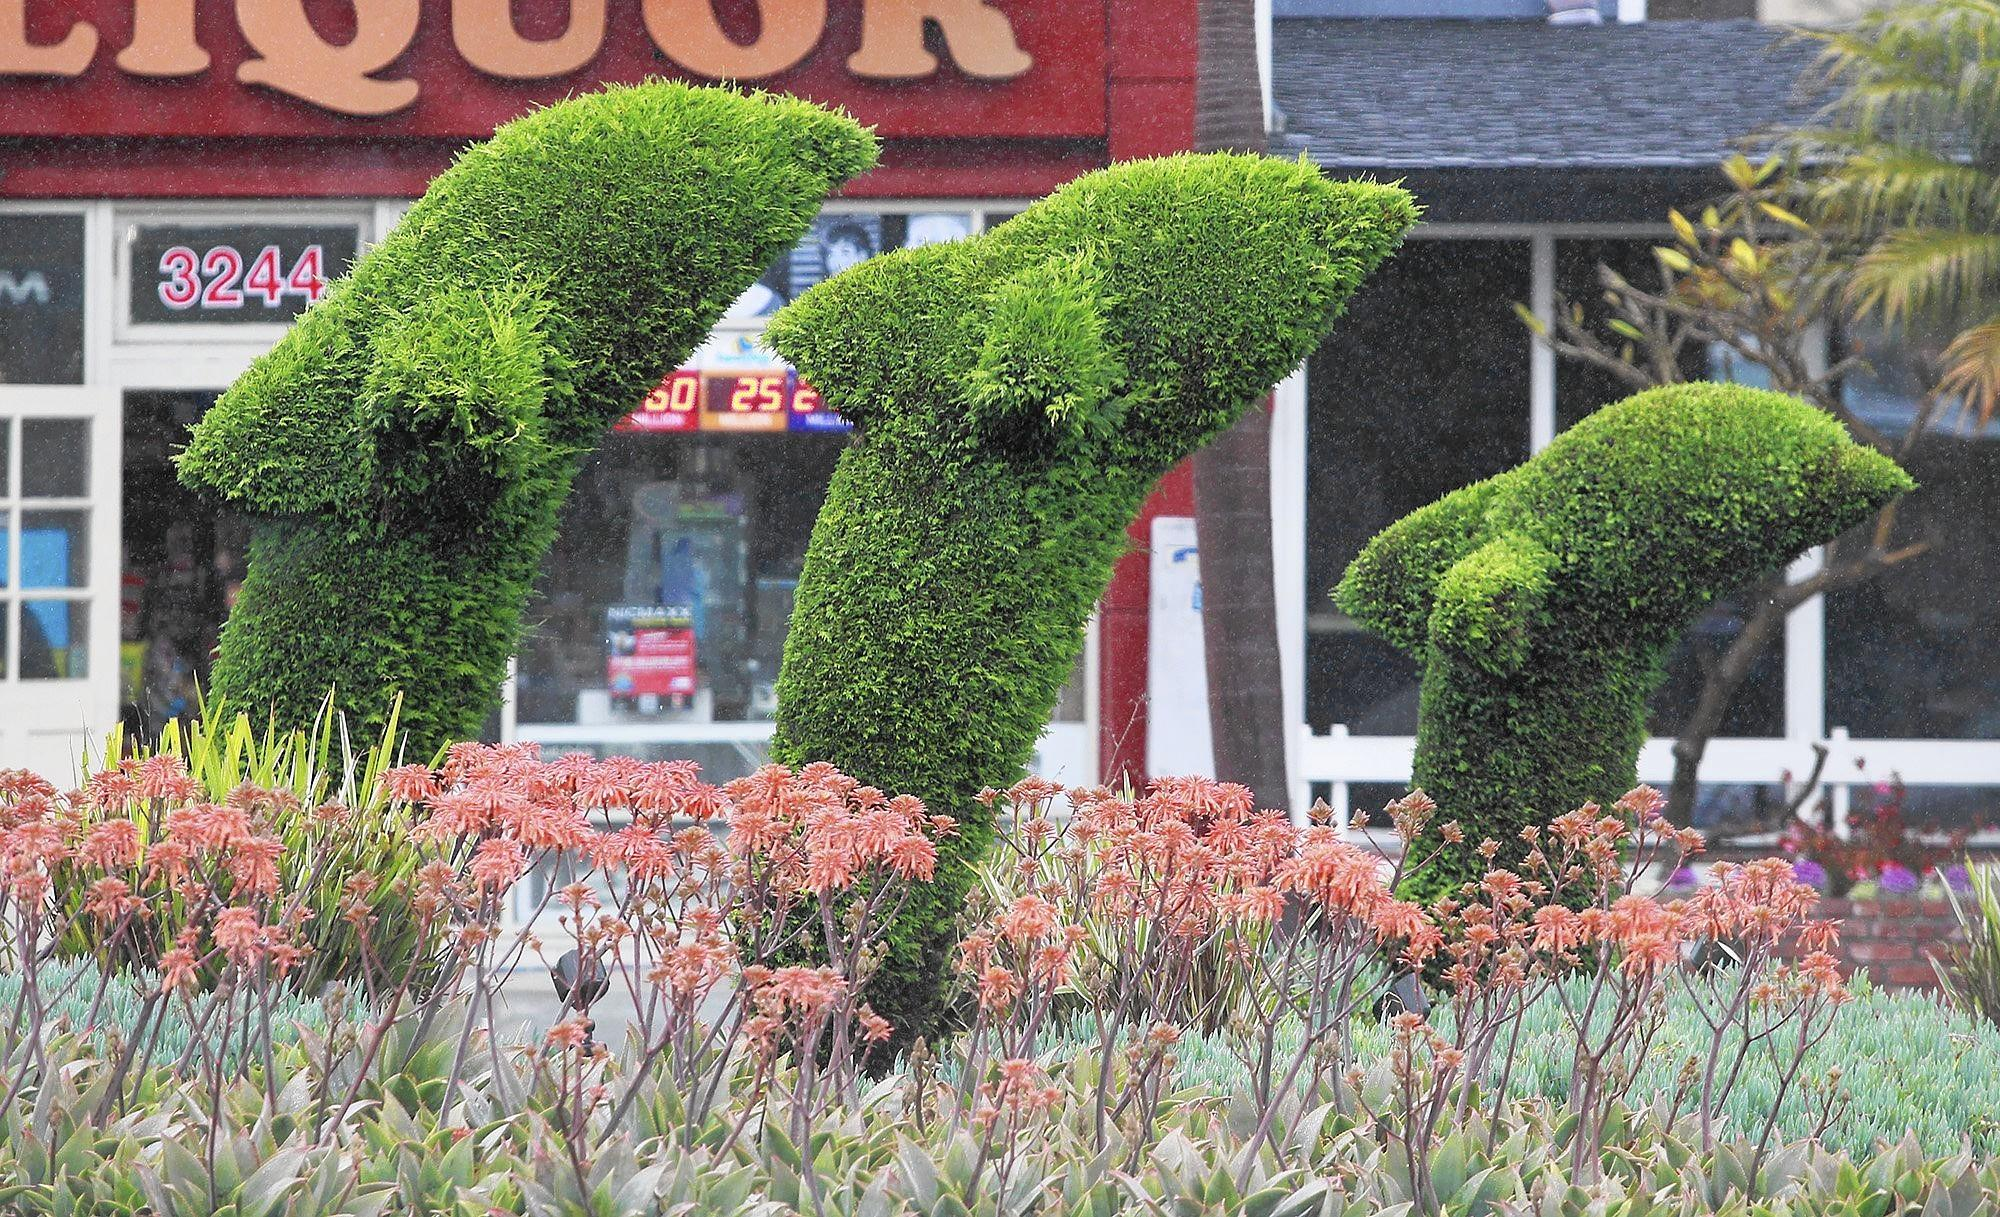 The city of Newport Beach will replace the 12 overgrown dolphin topiaries in Corona del Mar with new ones this fall.